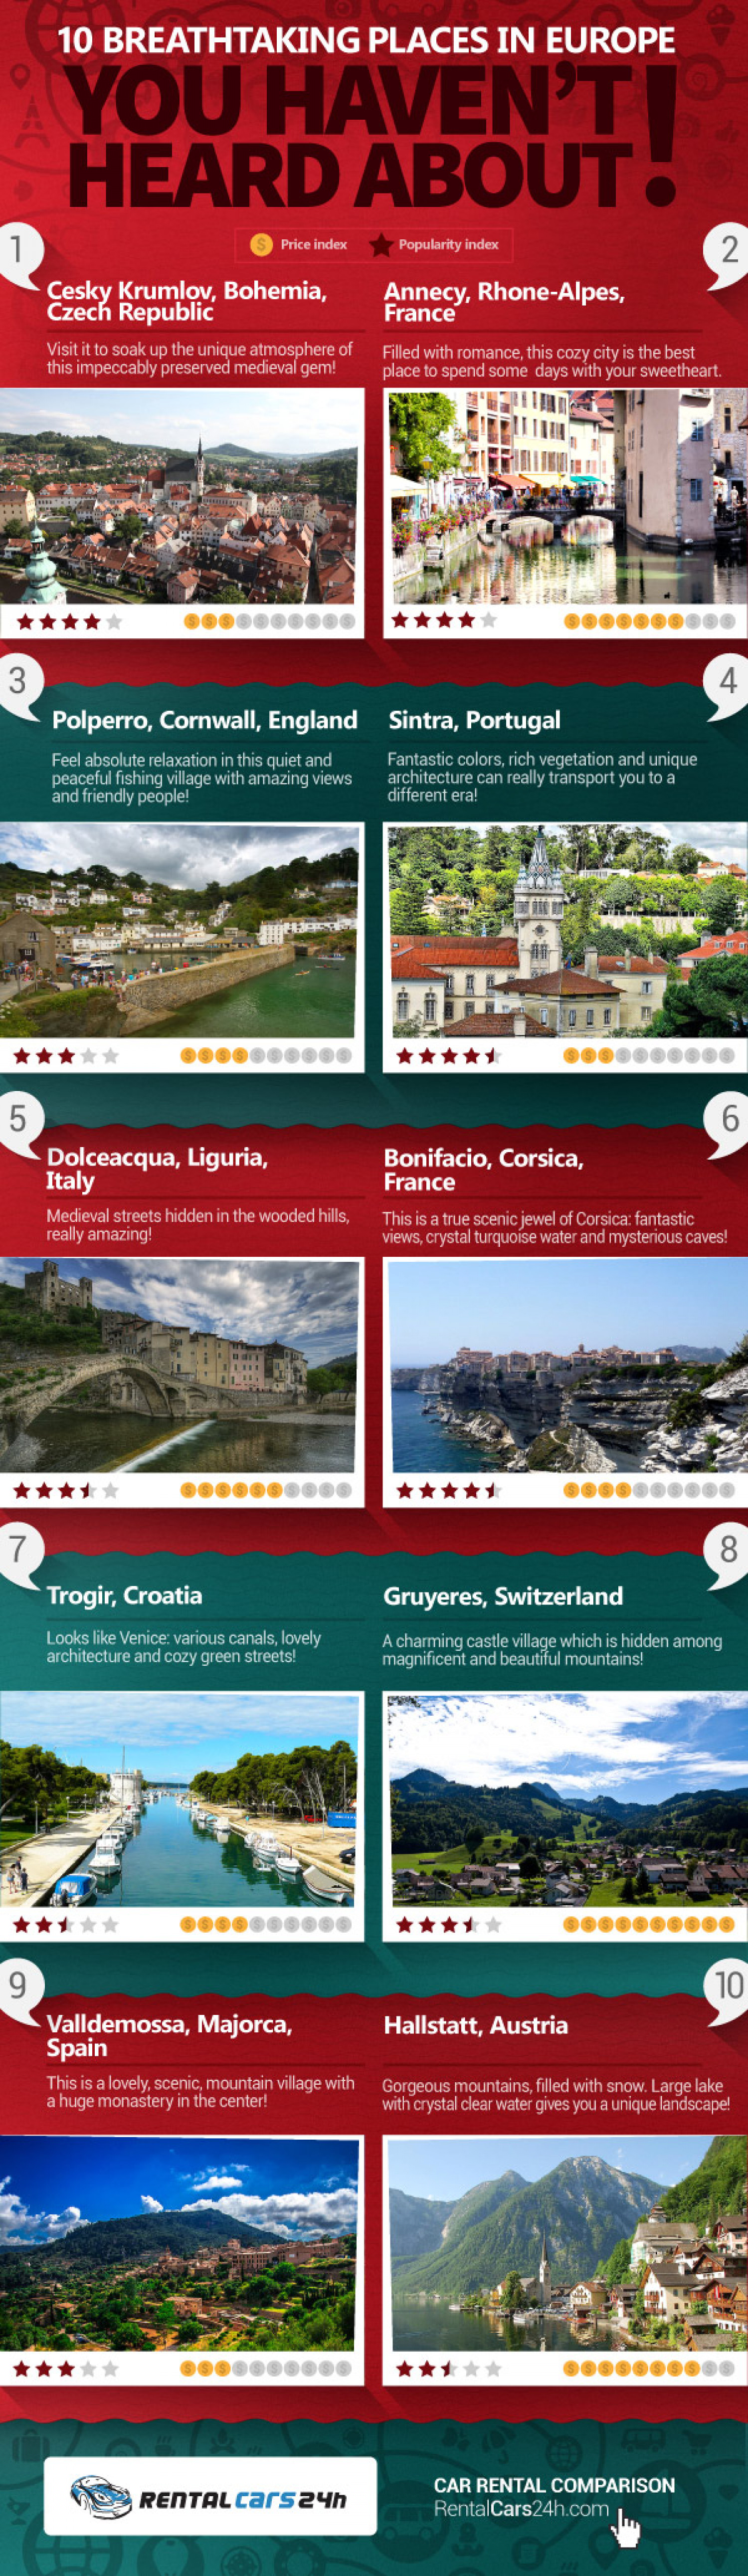 10 Breathtaking Places in Europe You Haven't Heard About! Infographic